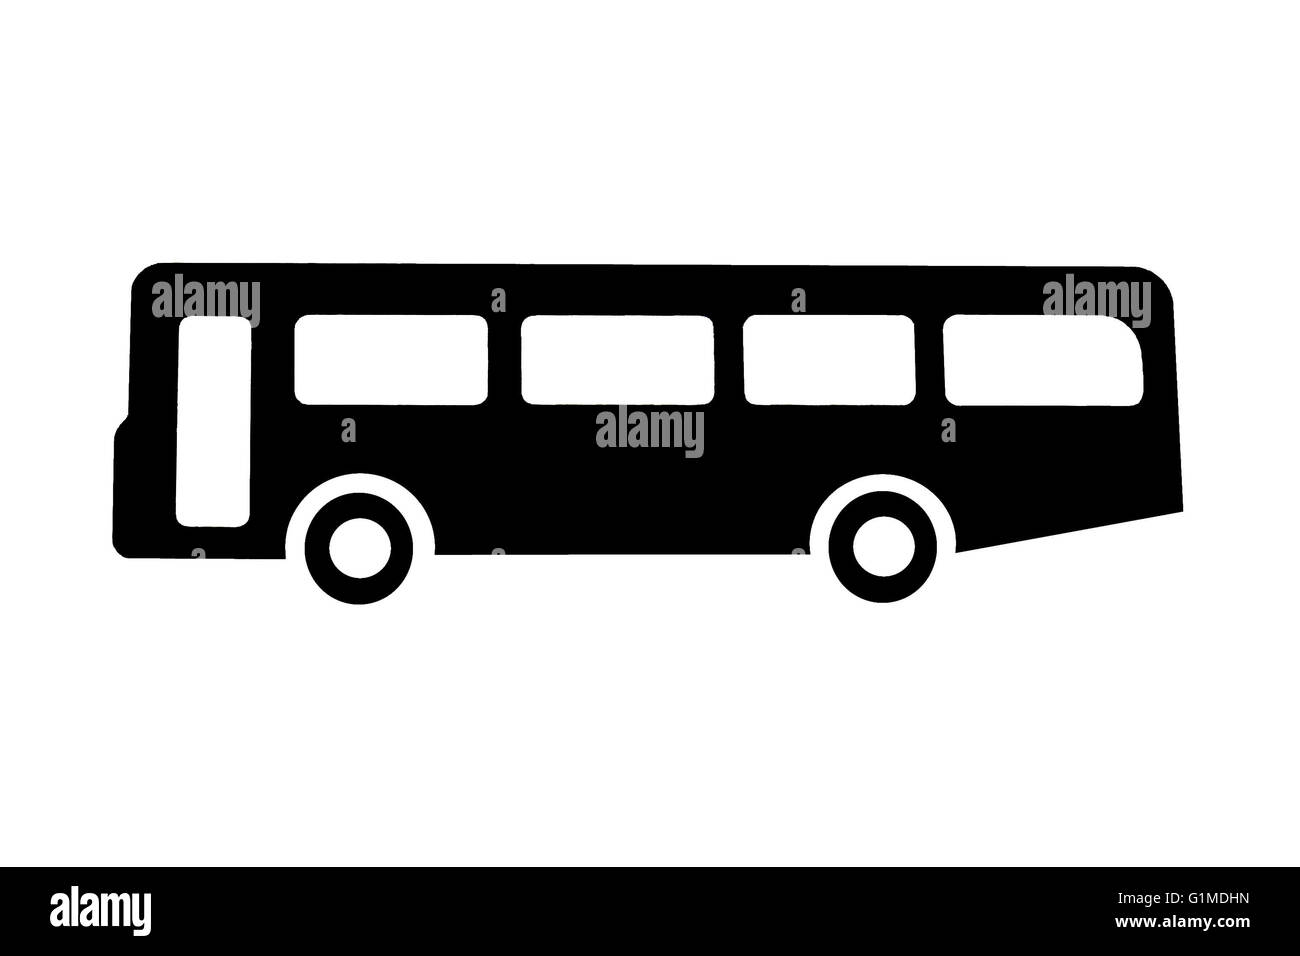 A bus or coach in black on white for signs or information - Stock Image